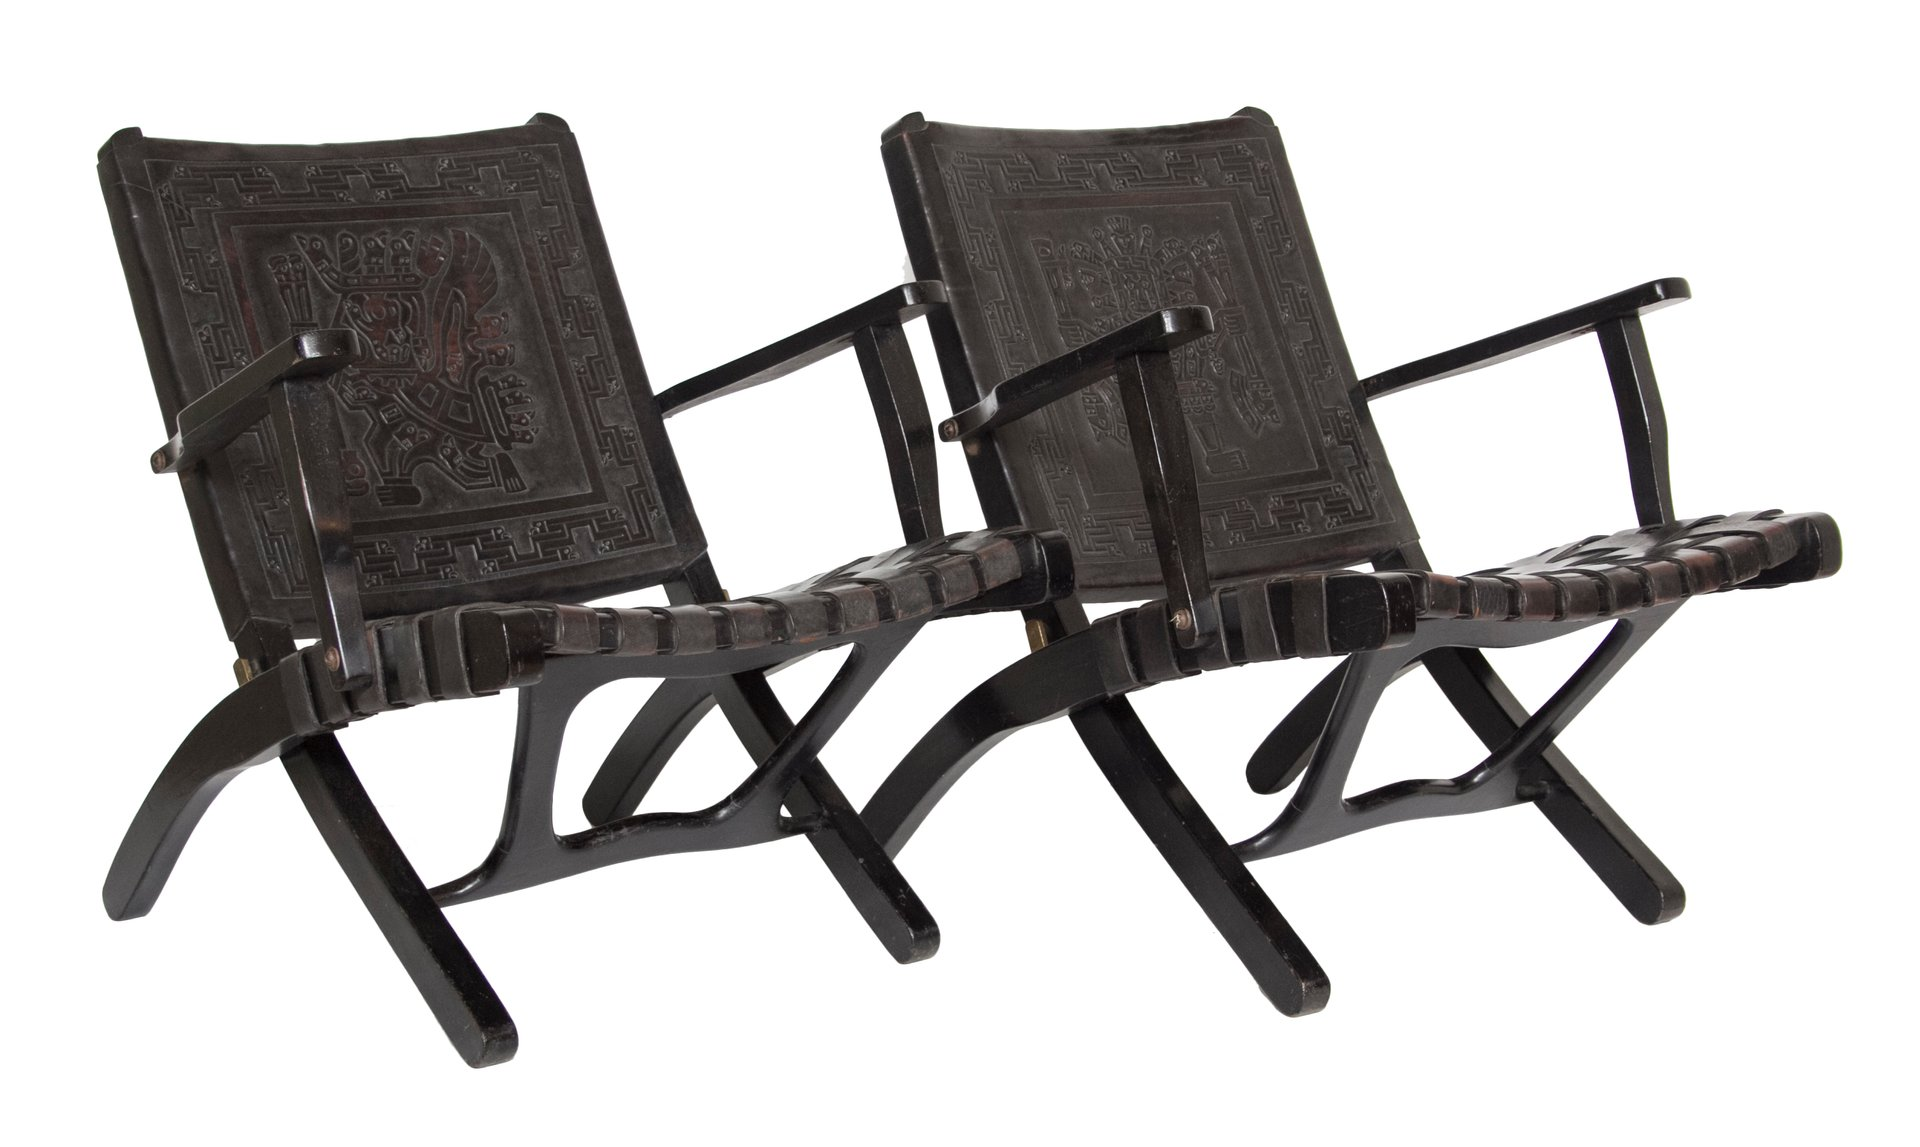 Peruvian Leather Folding Chairs 1950s Set of 2 for sale at Pamono